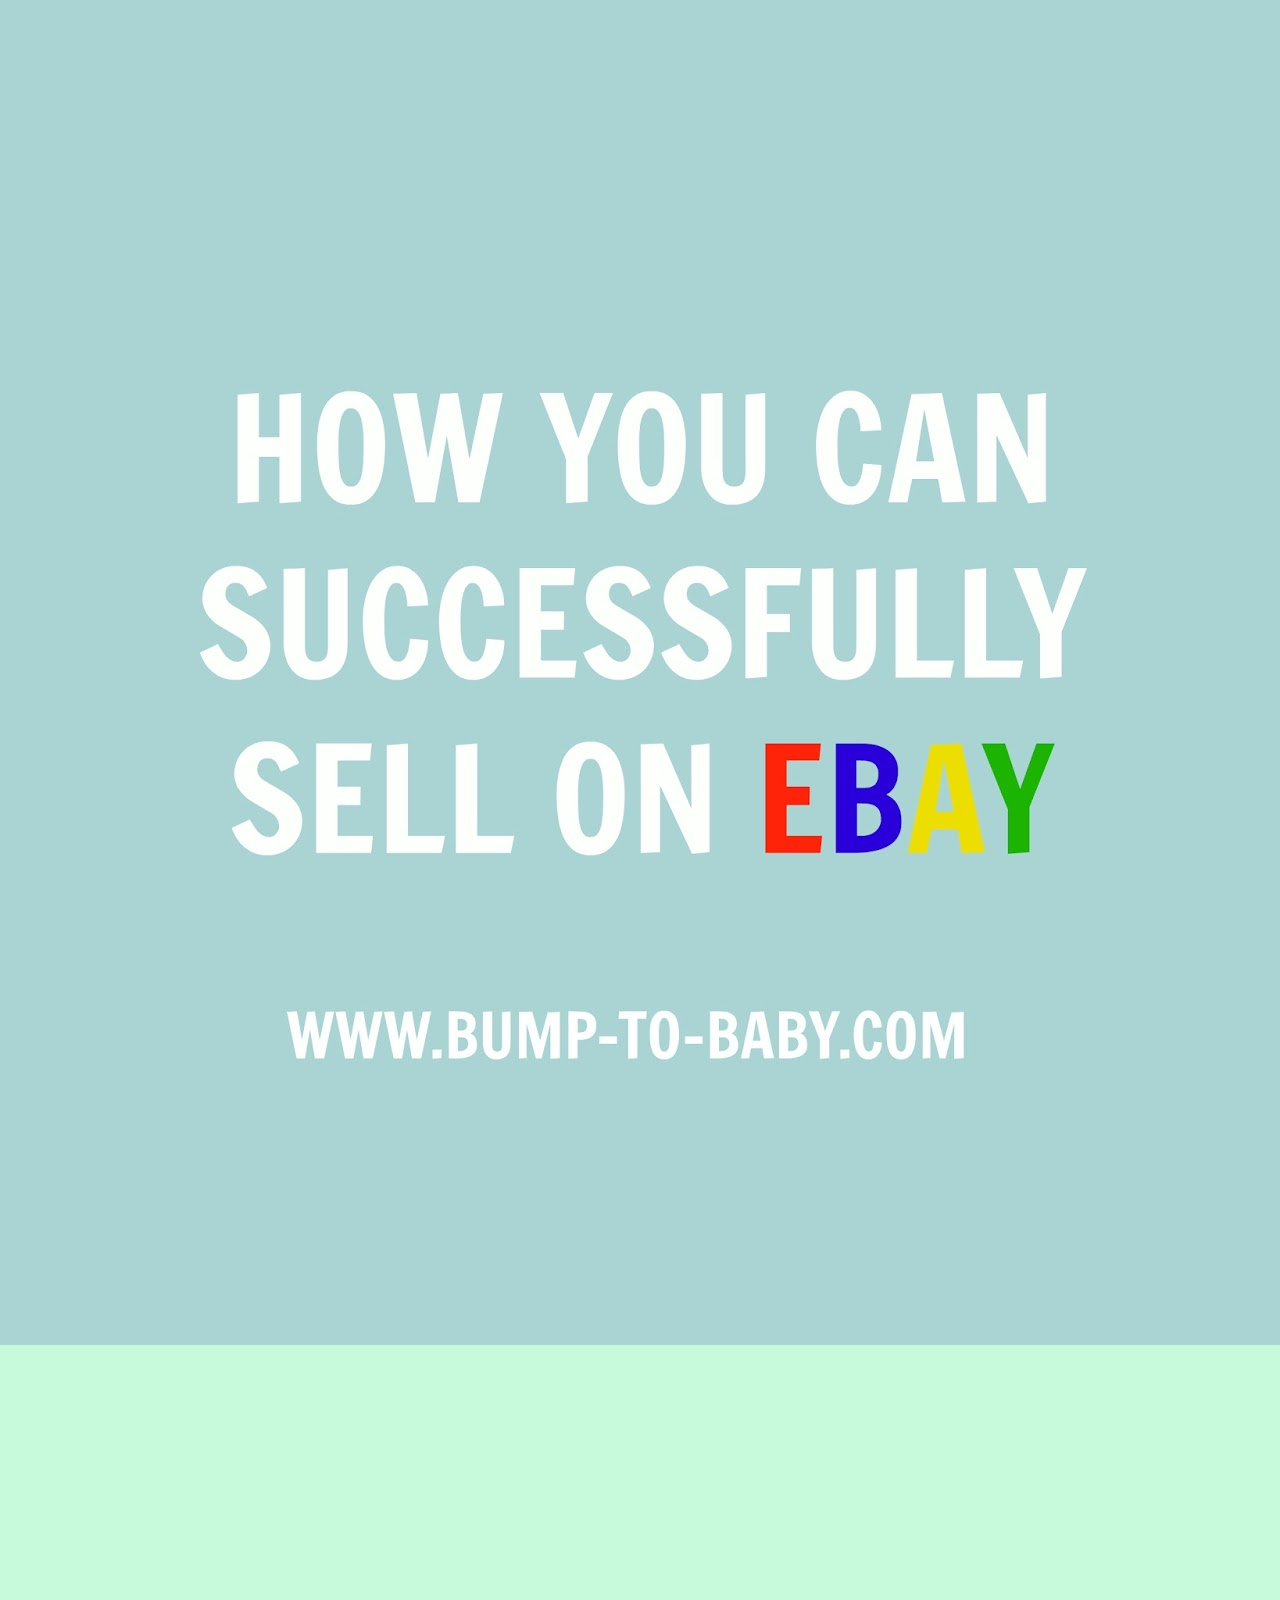 eBay tips for selling successfully